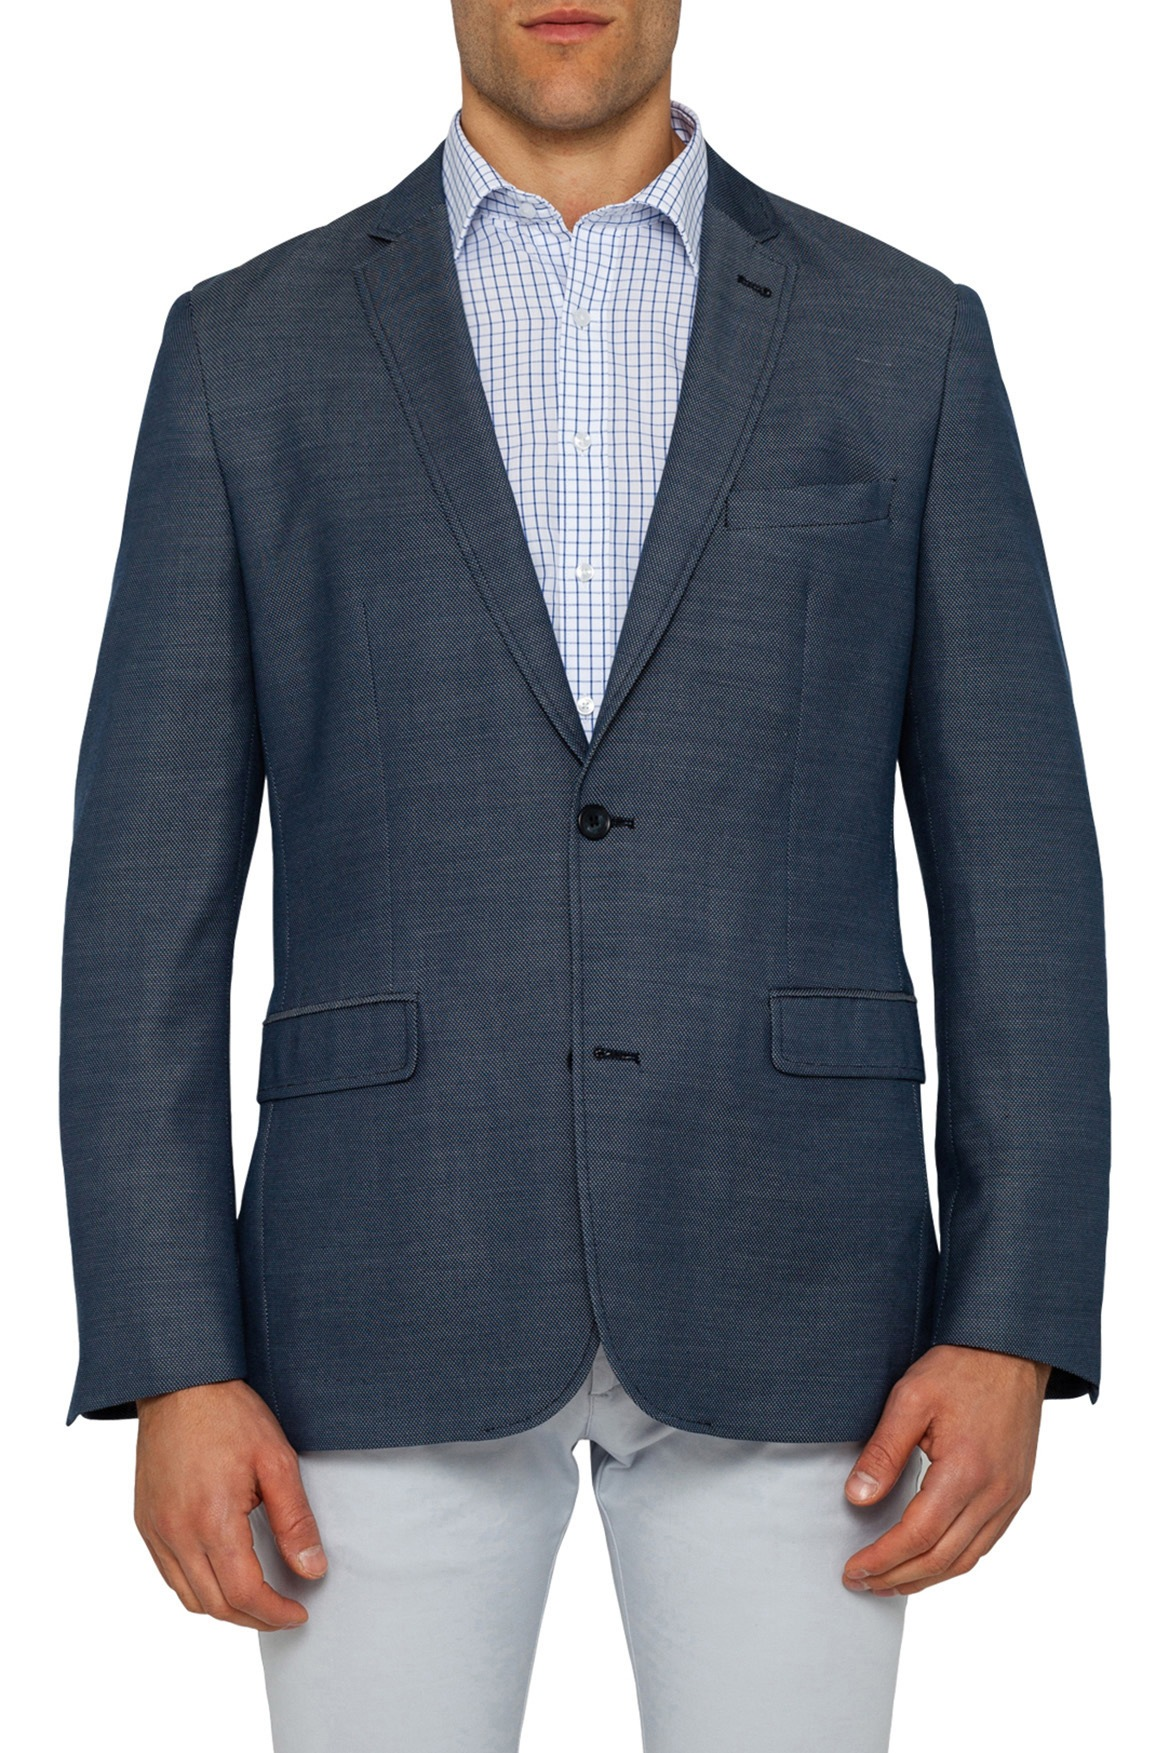 Pierre Cardin | Cotton Sports Jacket | Myer Online